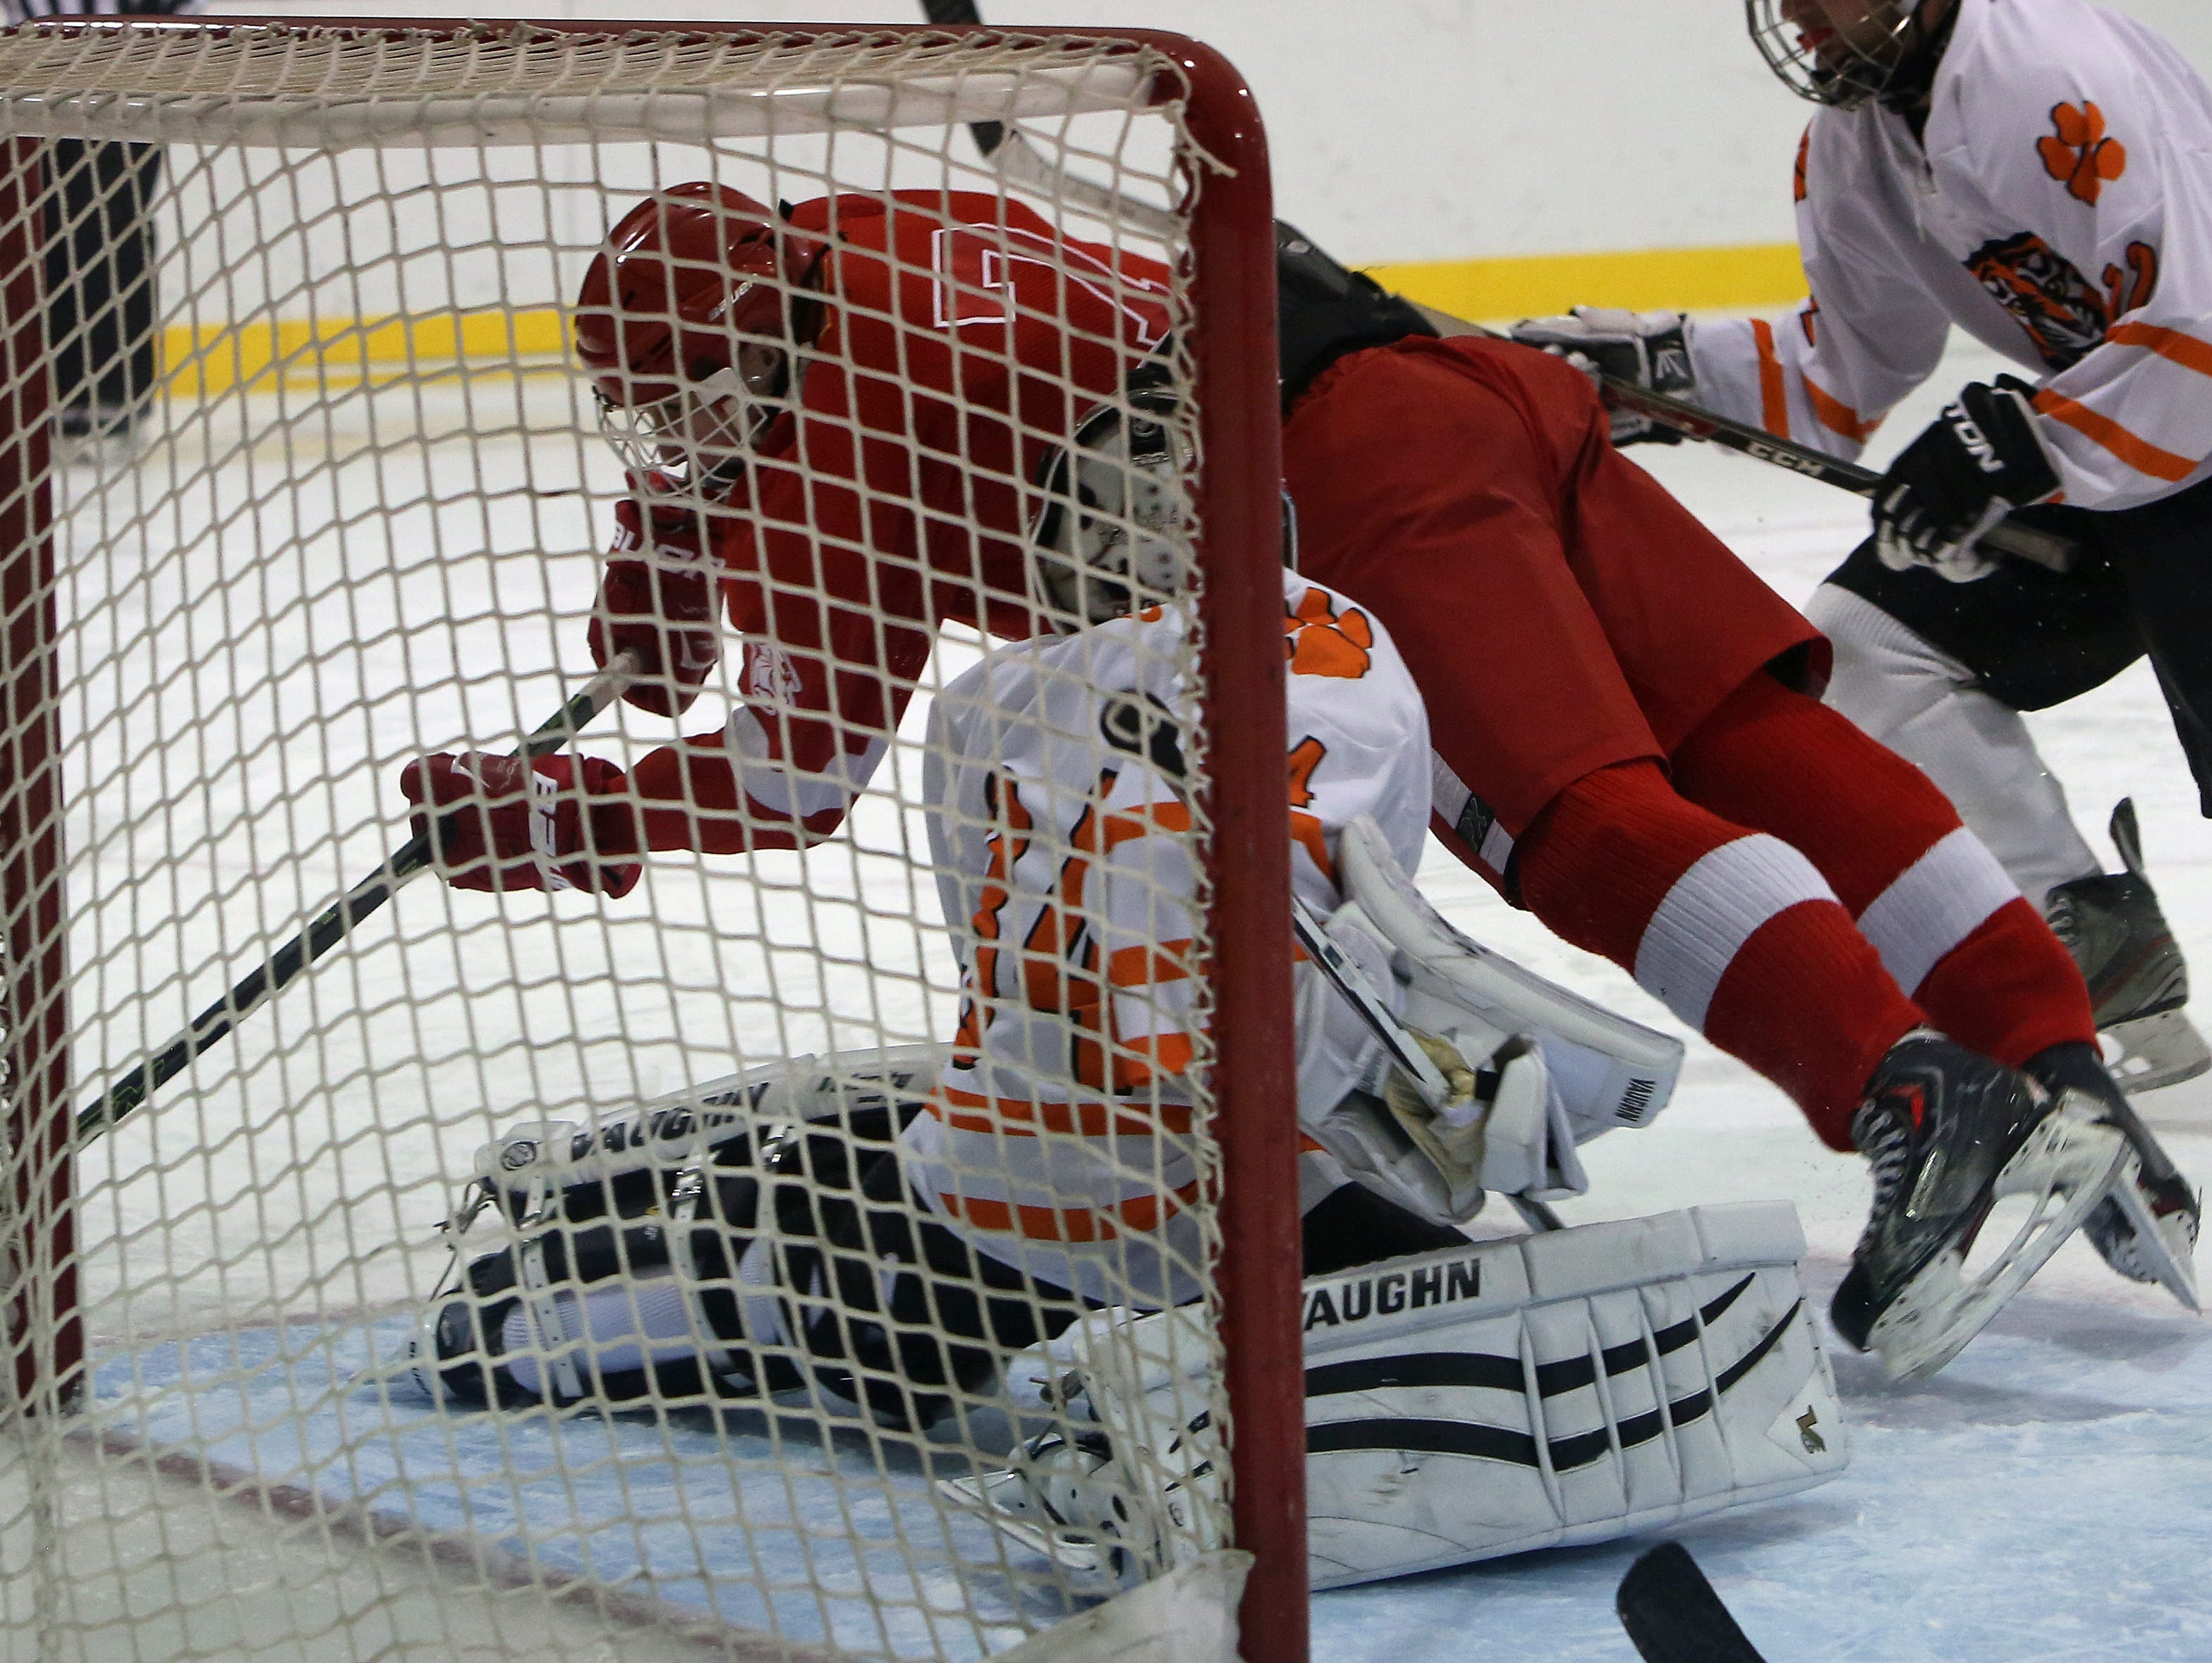 North Rockland's Bryan Jensen (7) dives over White Plains' goalie Justin Schulz (34) as he tries to get a shot by him during hockey action at Ebersole Ice Rink in White Plains Jan. 7, 2016. The game ended in a 4-4 tie.